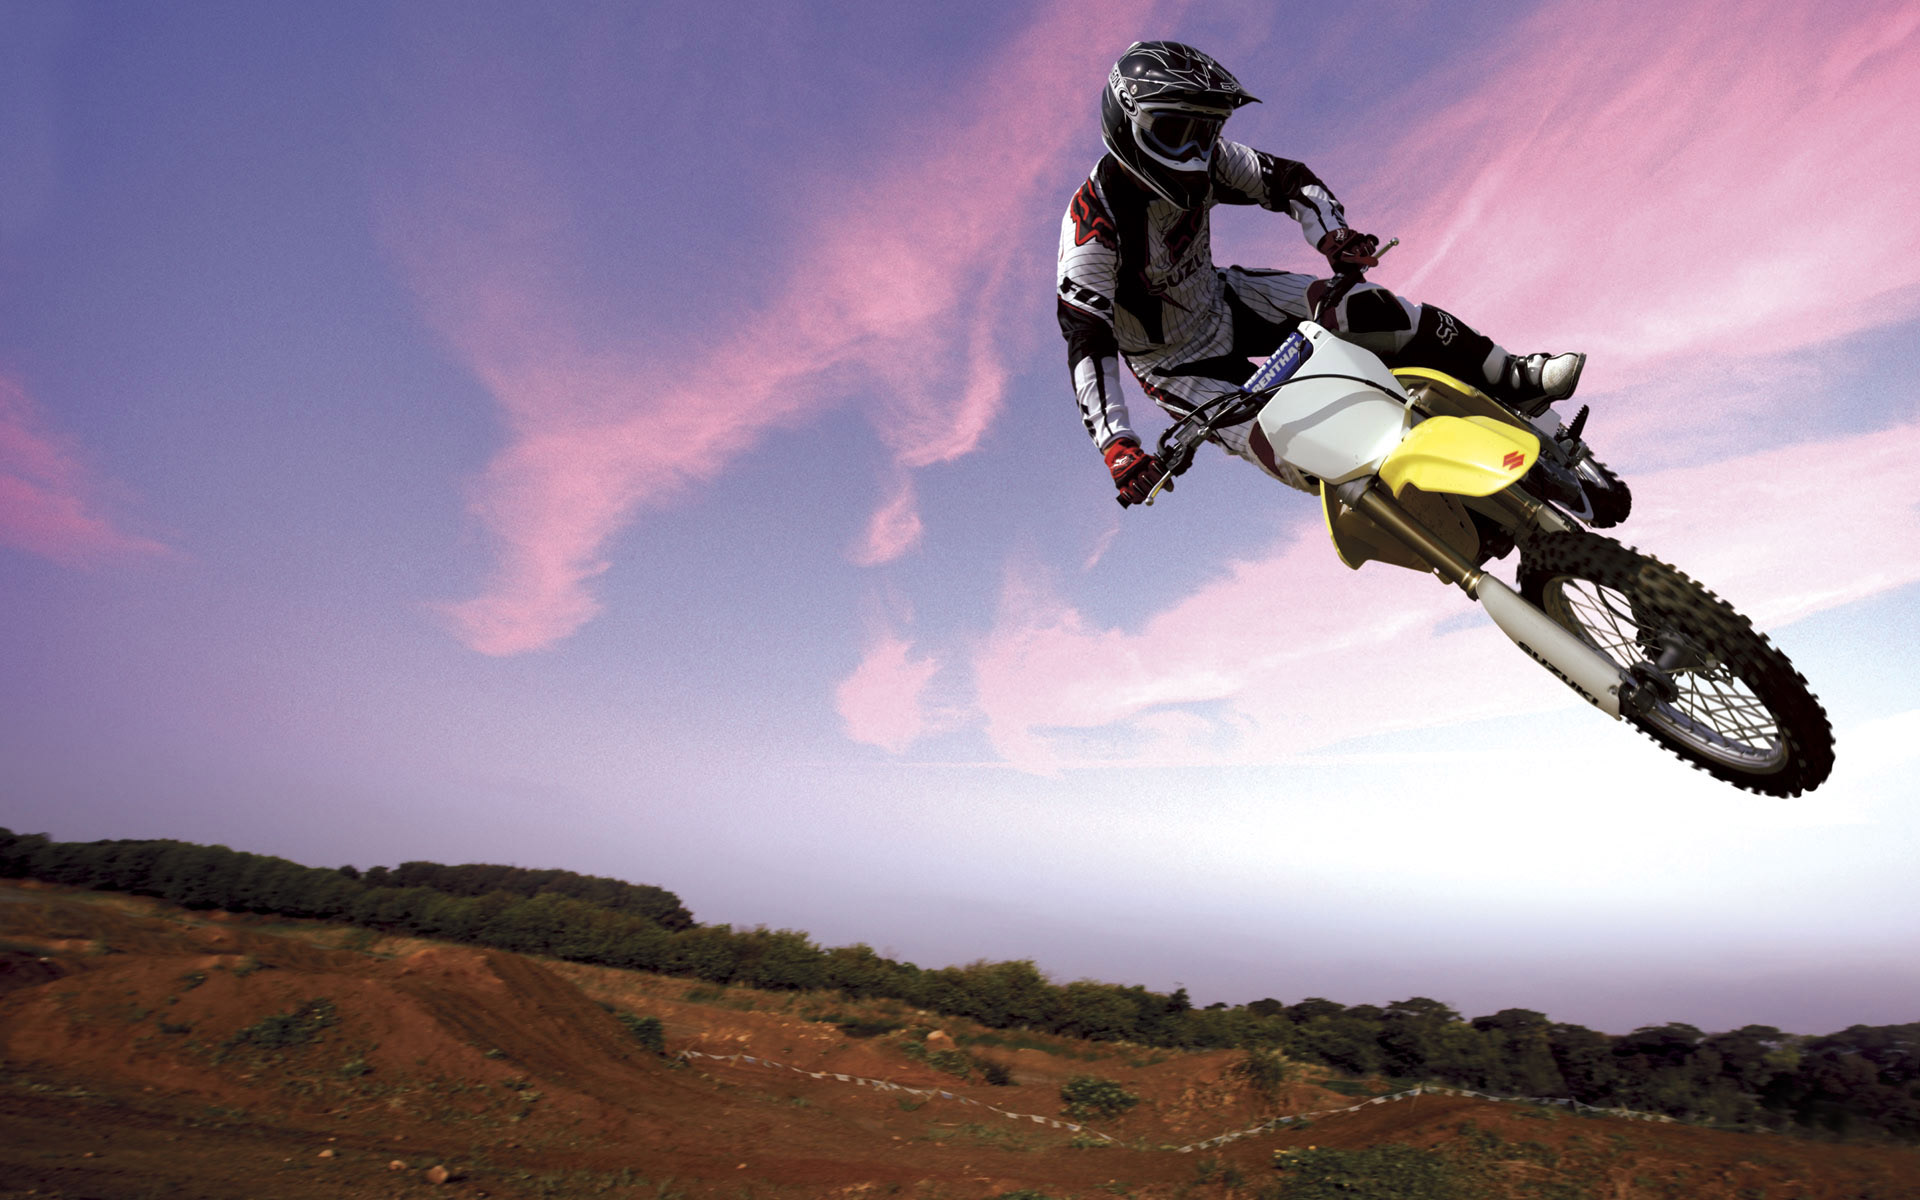 Free Motocross Wallpapers